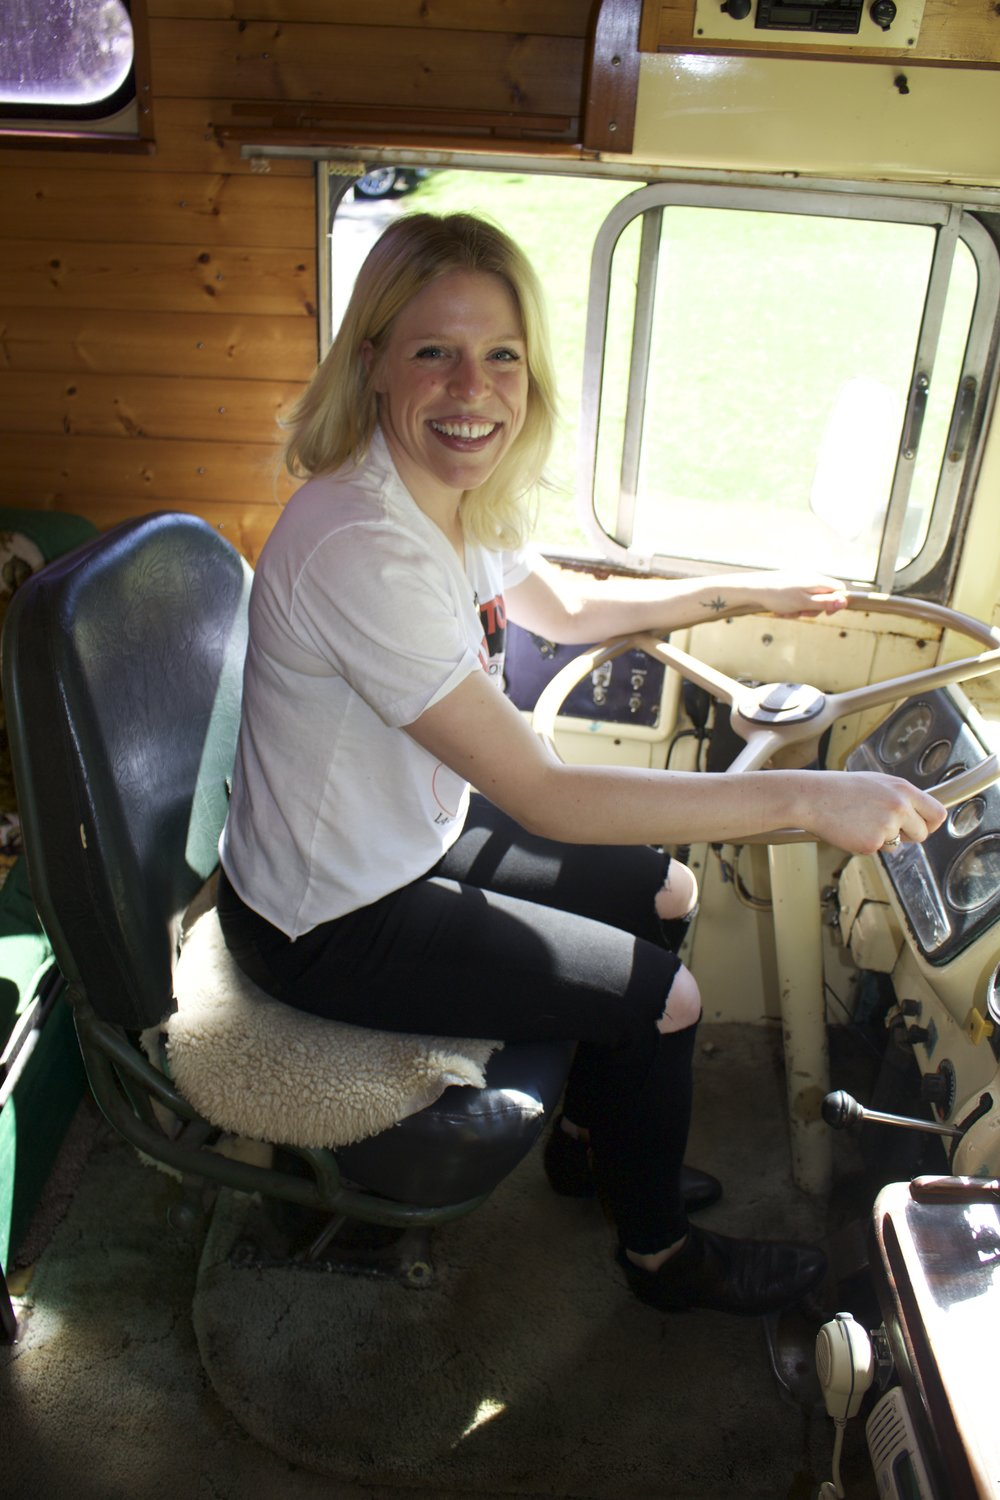 He even let me pretend to drive the bus!